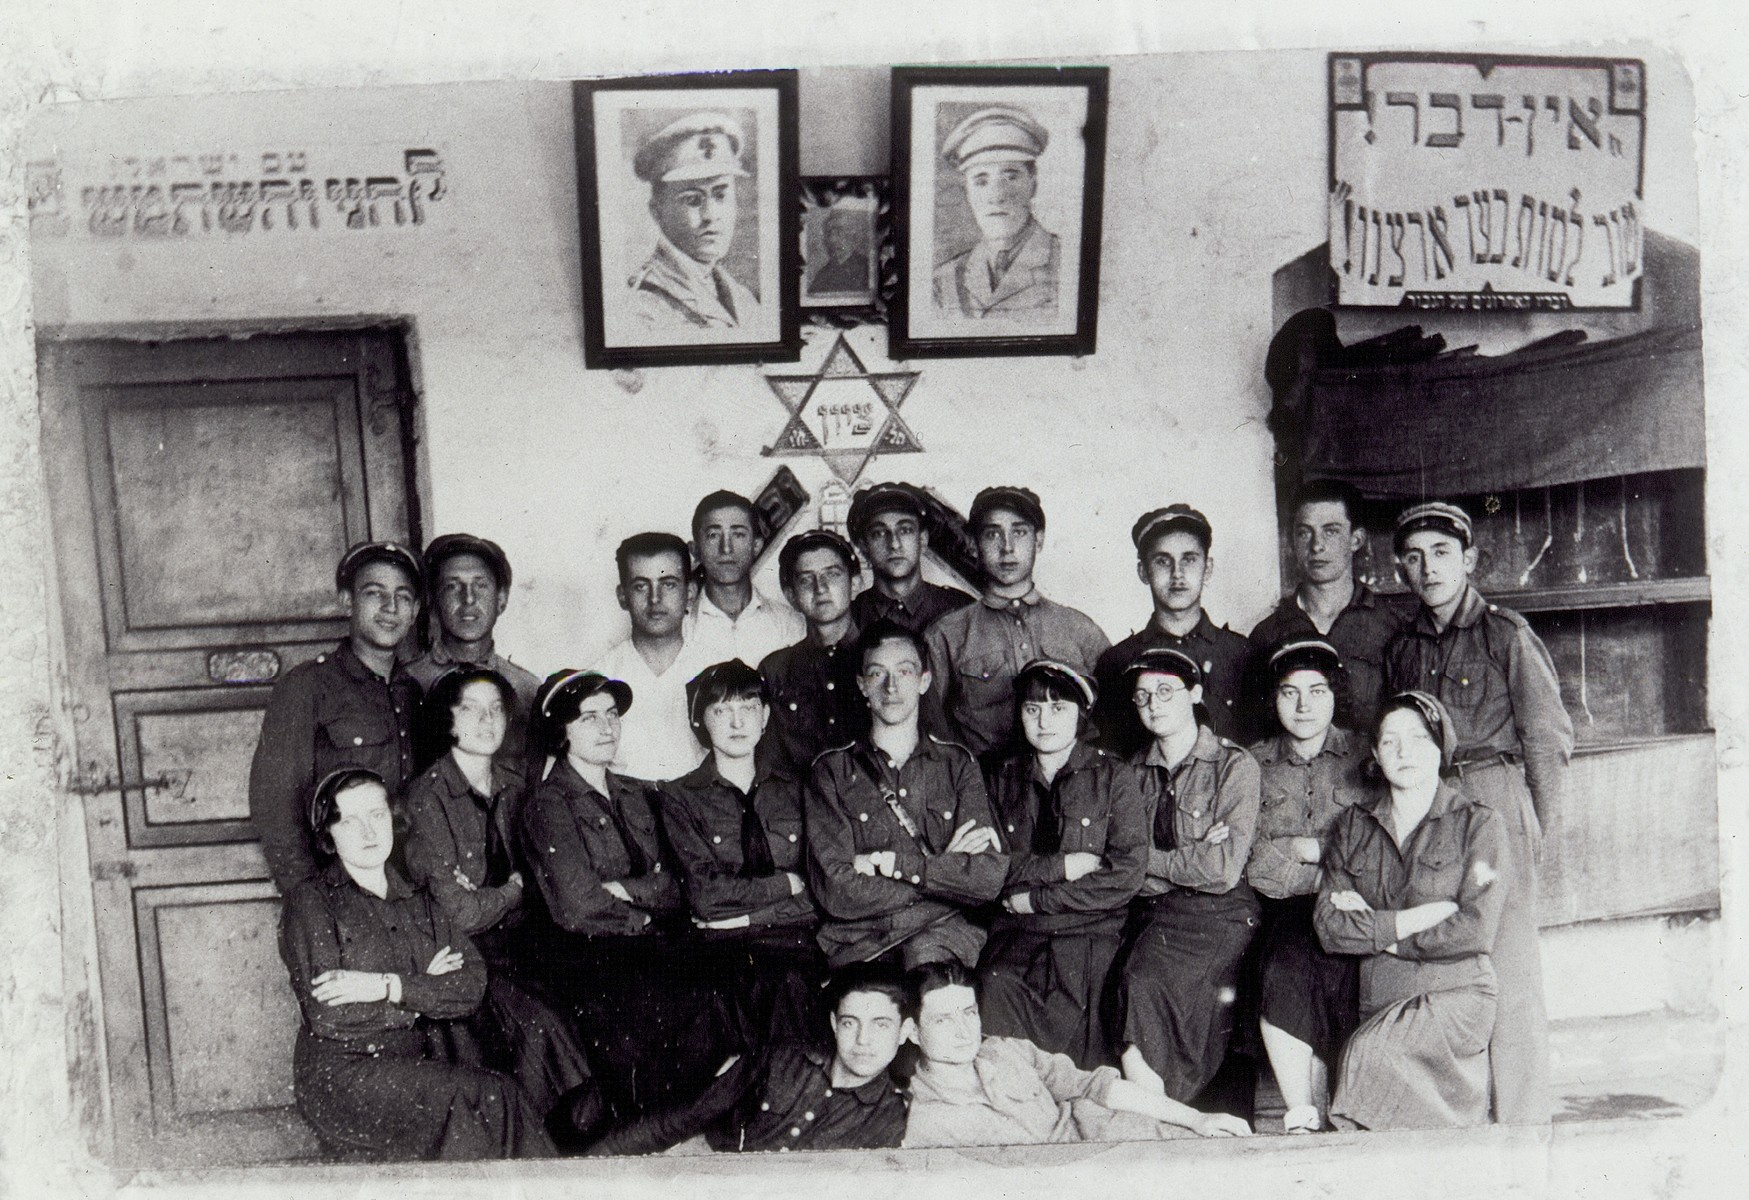 A meeting of Betar leaders and counselors in Eisiskes.    On the wall the photo on the right is of Joseph Trumpeldor, and the photo on the left is of  Vladimir Jabotinsky. Top row: third from right: Zvi Hirshke Schwartz and sixth from right: Shepske (Shabtai) Sonenson  Seated second from right is Rachel Lewinson, third from right is Shoshana Hutner Hinski, sixth from the right is Shoshana Katz and on the far left is Miriam Kabacznik.     Rachel Lewinson and Shoshana Hutner Hinski immigrated to Palestine. Miriam  Kabacznik survived the Holocaust in hiding.  Shepshke (Shabtai) Sonenson, Zvi Hishke Schwartz and Shoshana Katz were murdered in the September 1941 massacre.